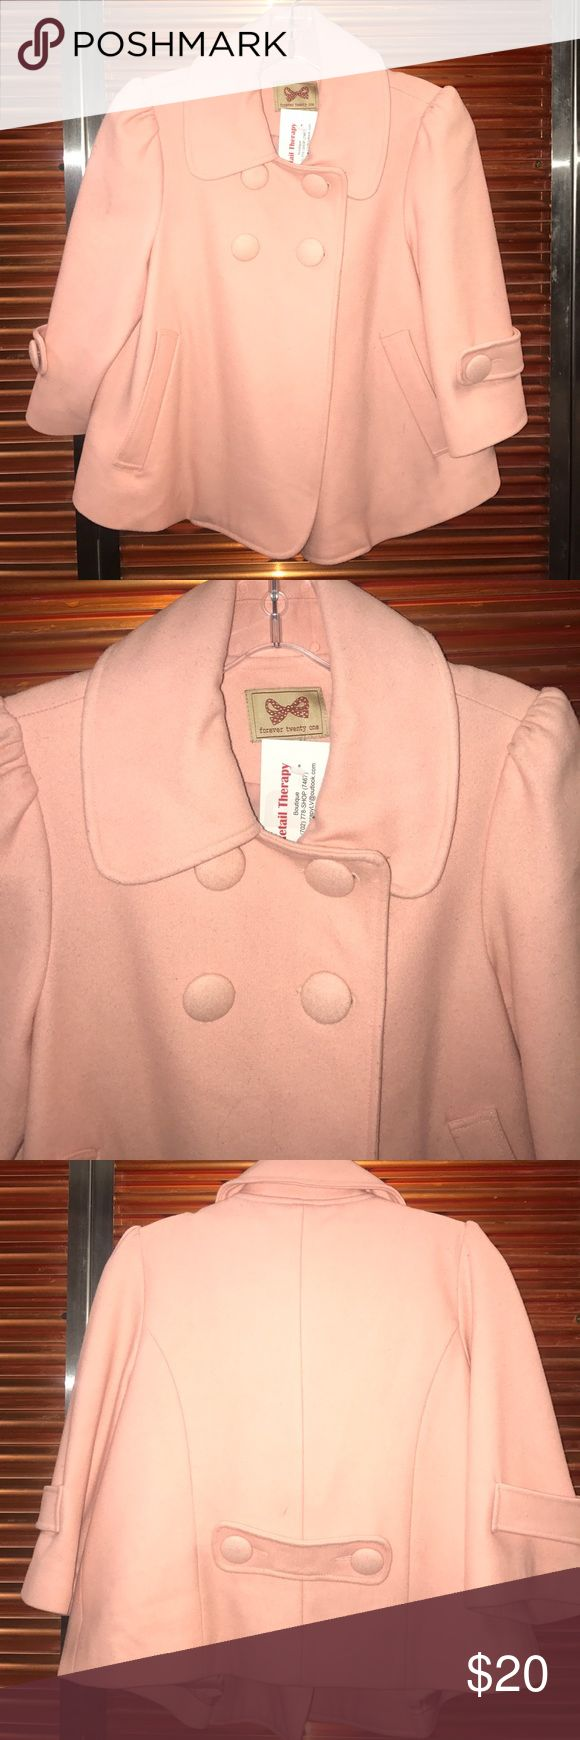 Women's Peacoat Women's peacoat style cropped jacket! Gently used w a few small wear marks on back, please see pics for better detail  Forever twenty one Jackets & Coats Pea Coats